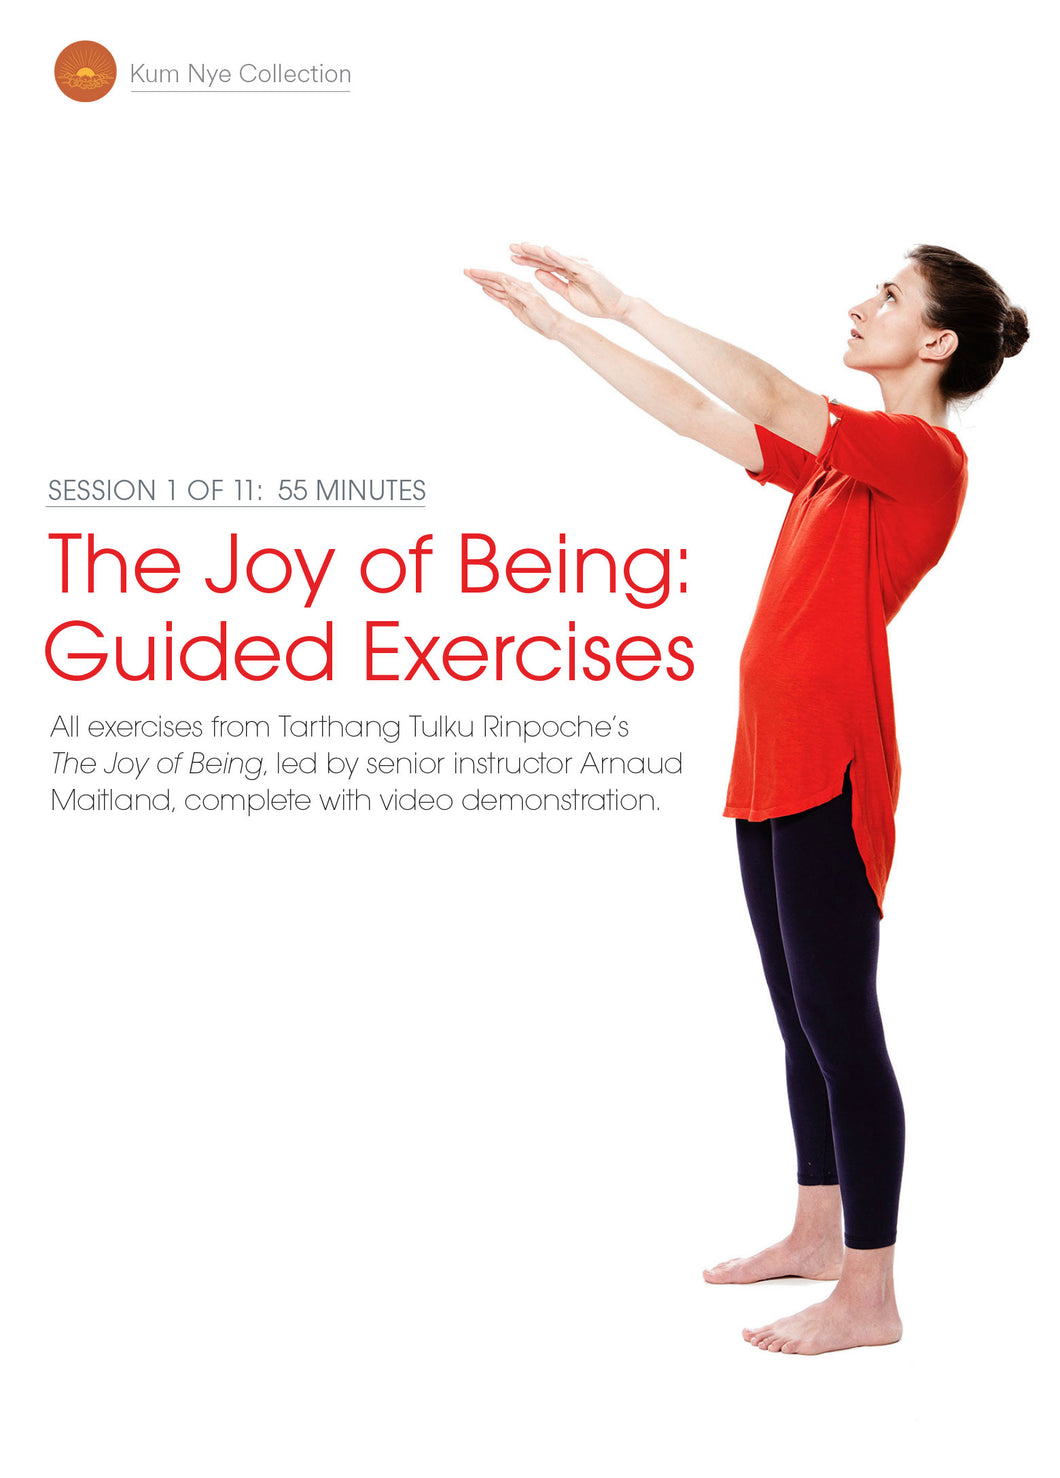 The Joy of Being; Guided Exercises, Session 1